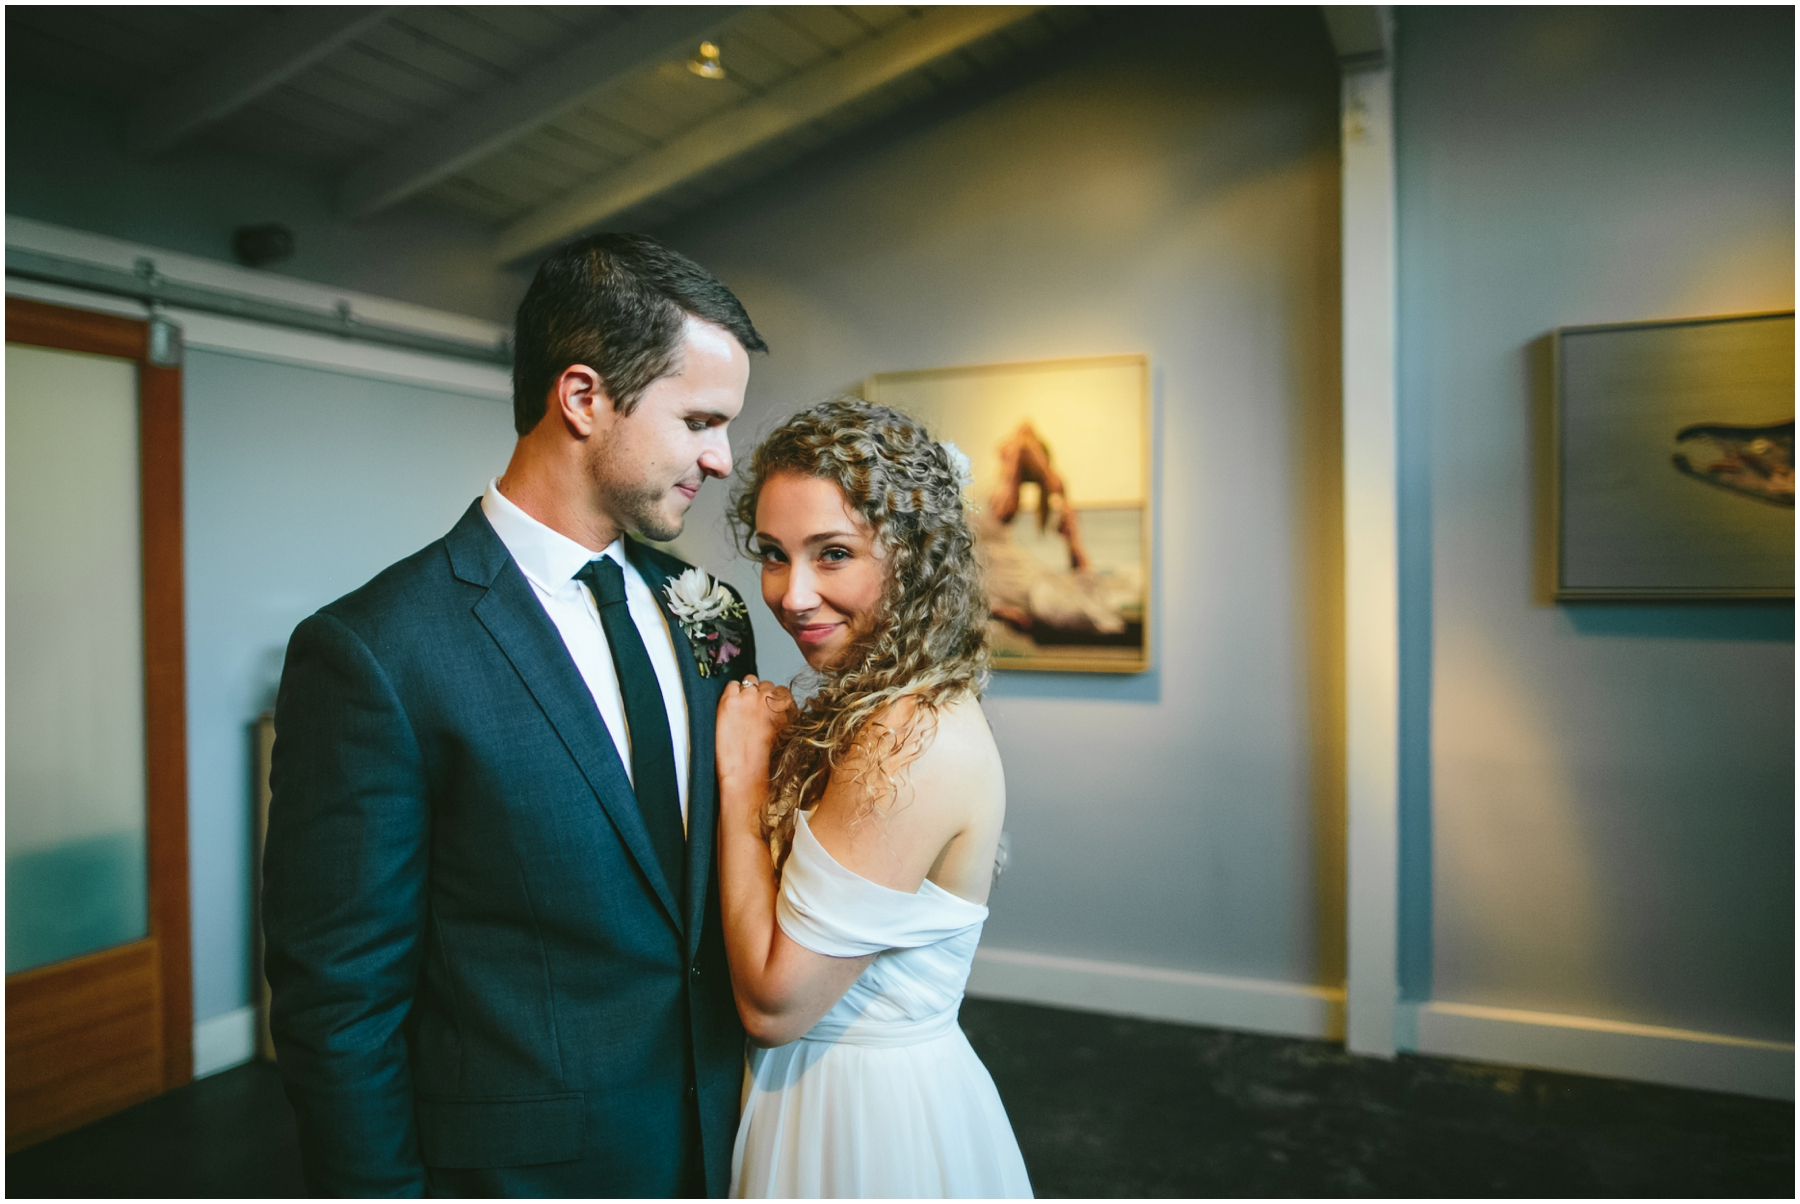 Emily+Paul-WEDDING_KellyBoitanoPhotography_0135